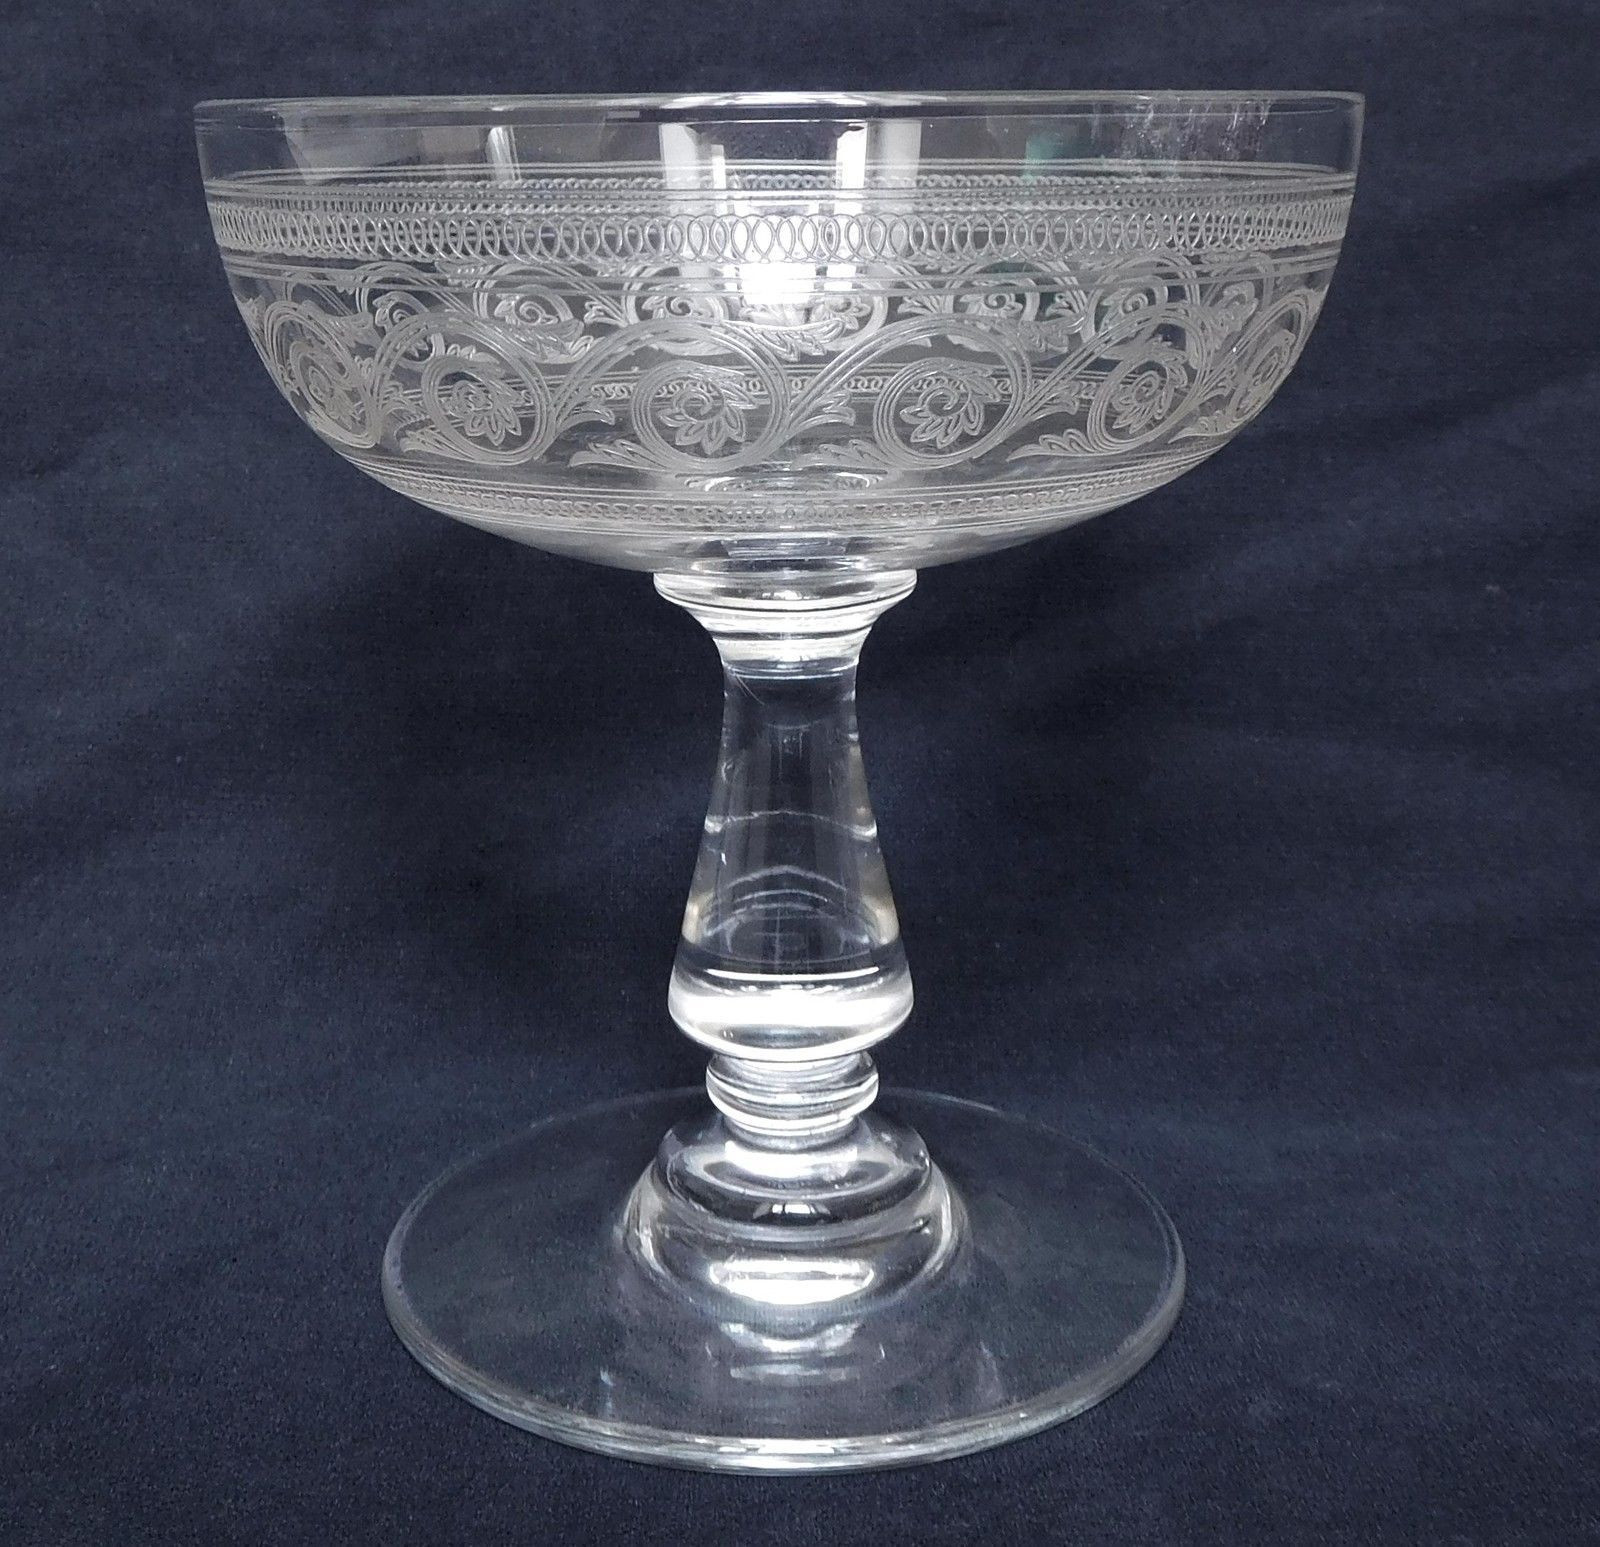 baccarat crystal vase prices of baccarat 6 coupes a champagne en cristal grava forme gondole regarding baccarat 6 coupes a champagne en cristal grava forme gondole athanienne 10cm in caramiq